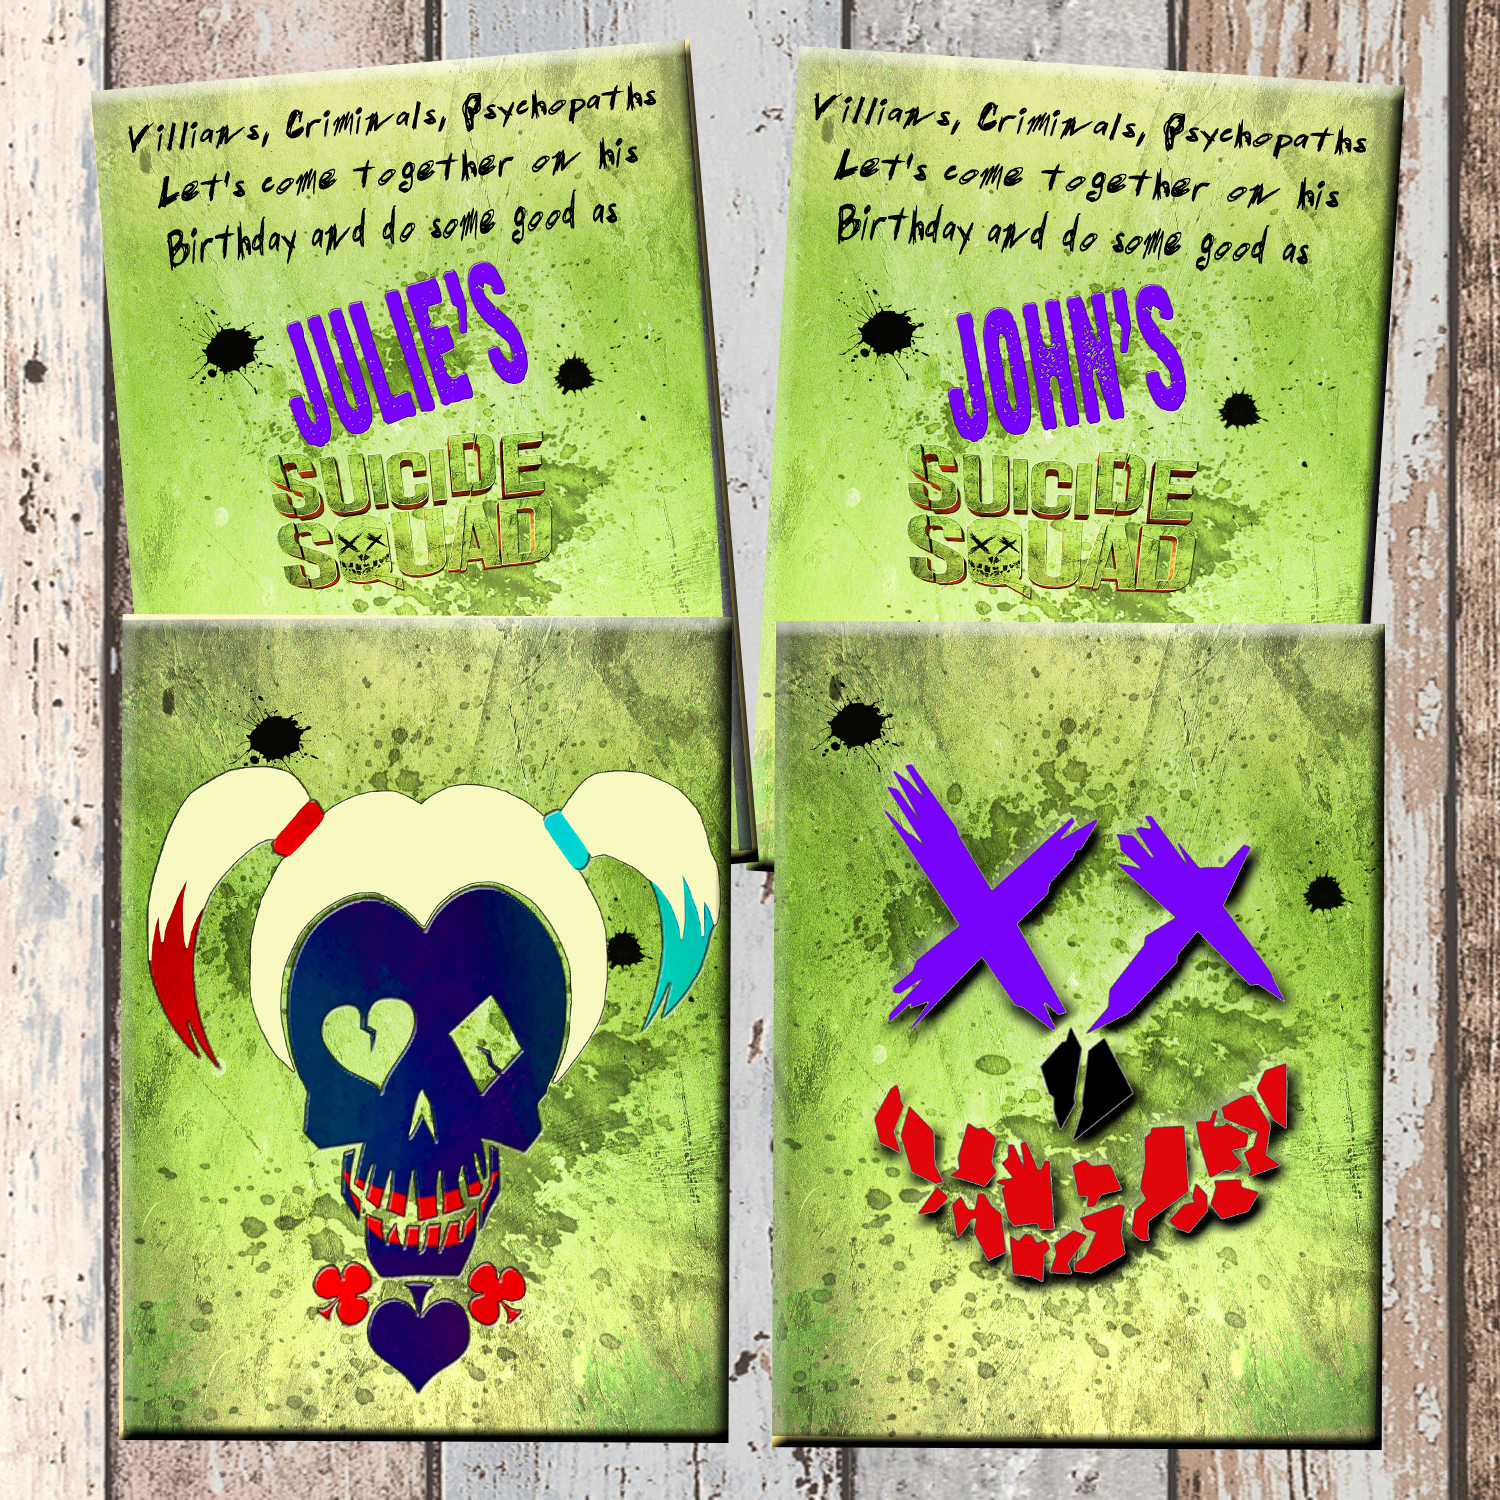 Suicide squad superhero personalized birthday invitation 2 sided sq demo original filmwisefo